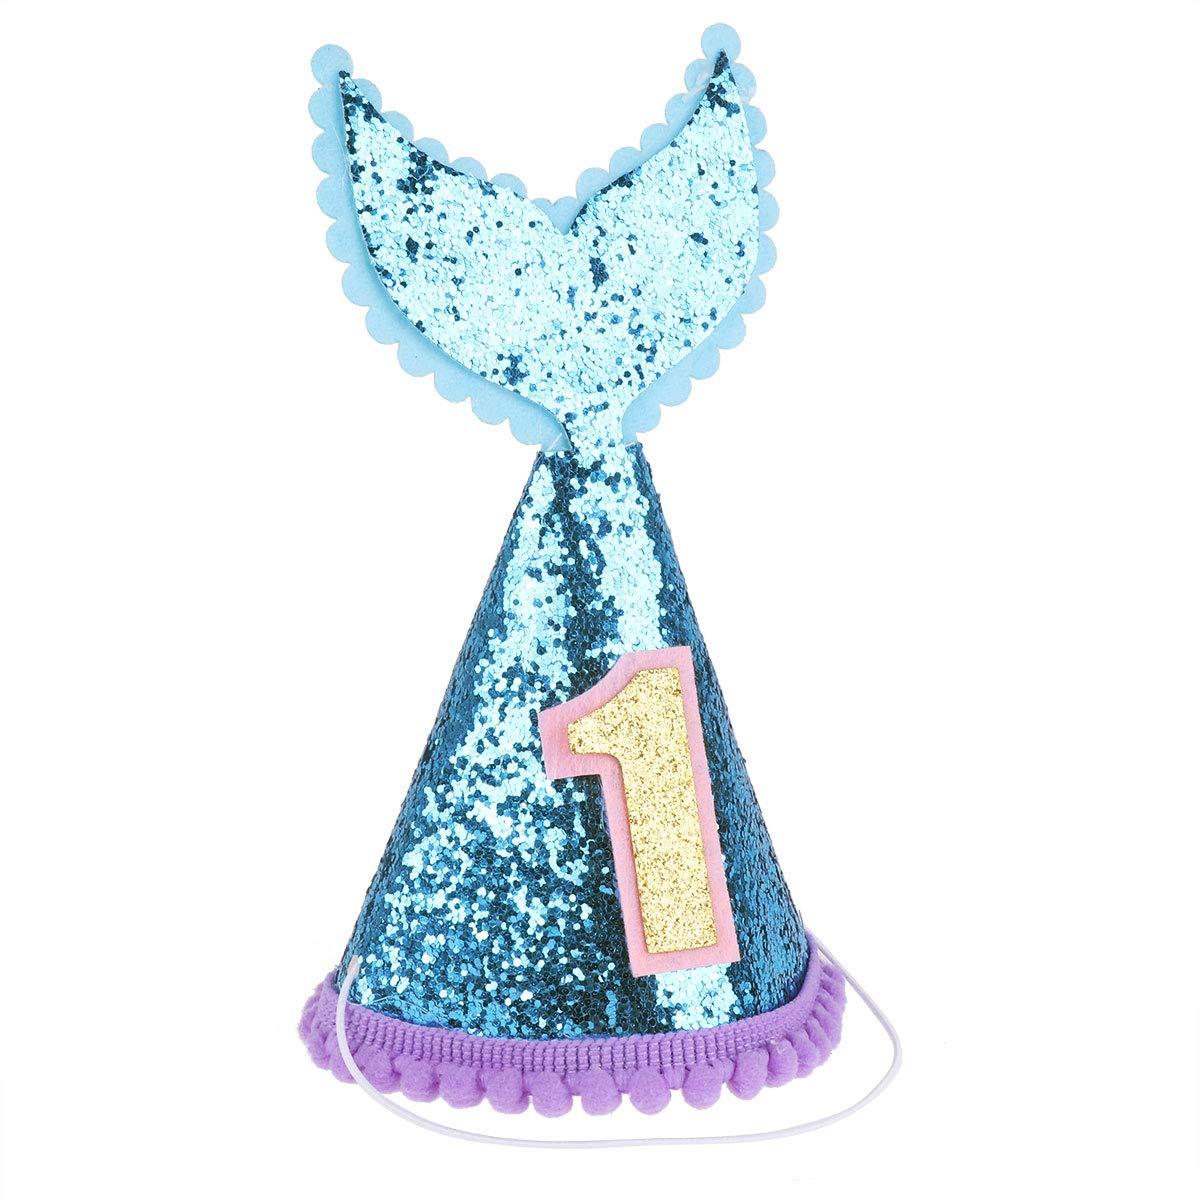 IEFIEL Baby Boys Girls 1st Birthday Cake Smash Party Sparkly Mermaid Tail Cone Hats Little Princess Pictures Accessories